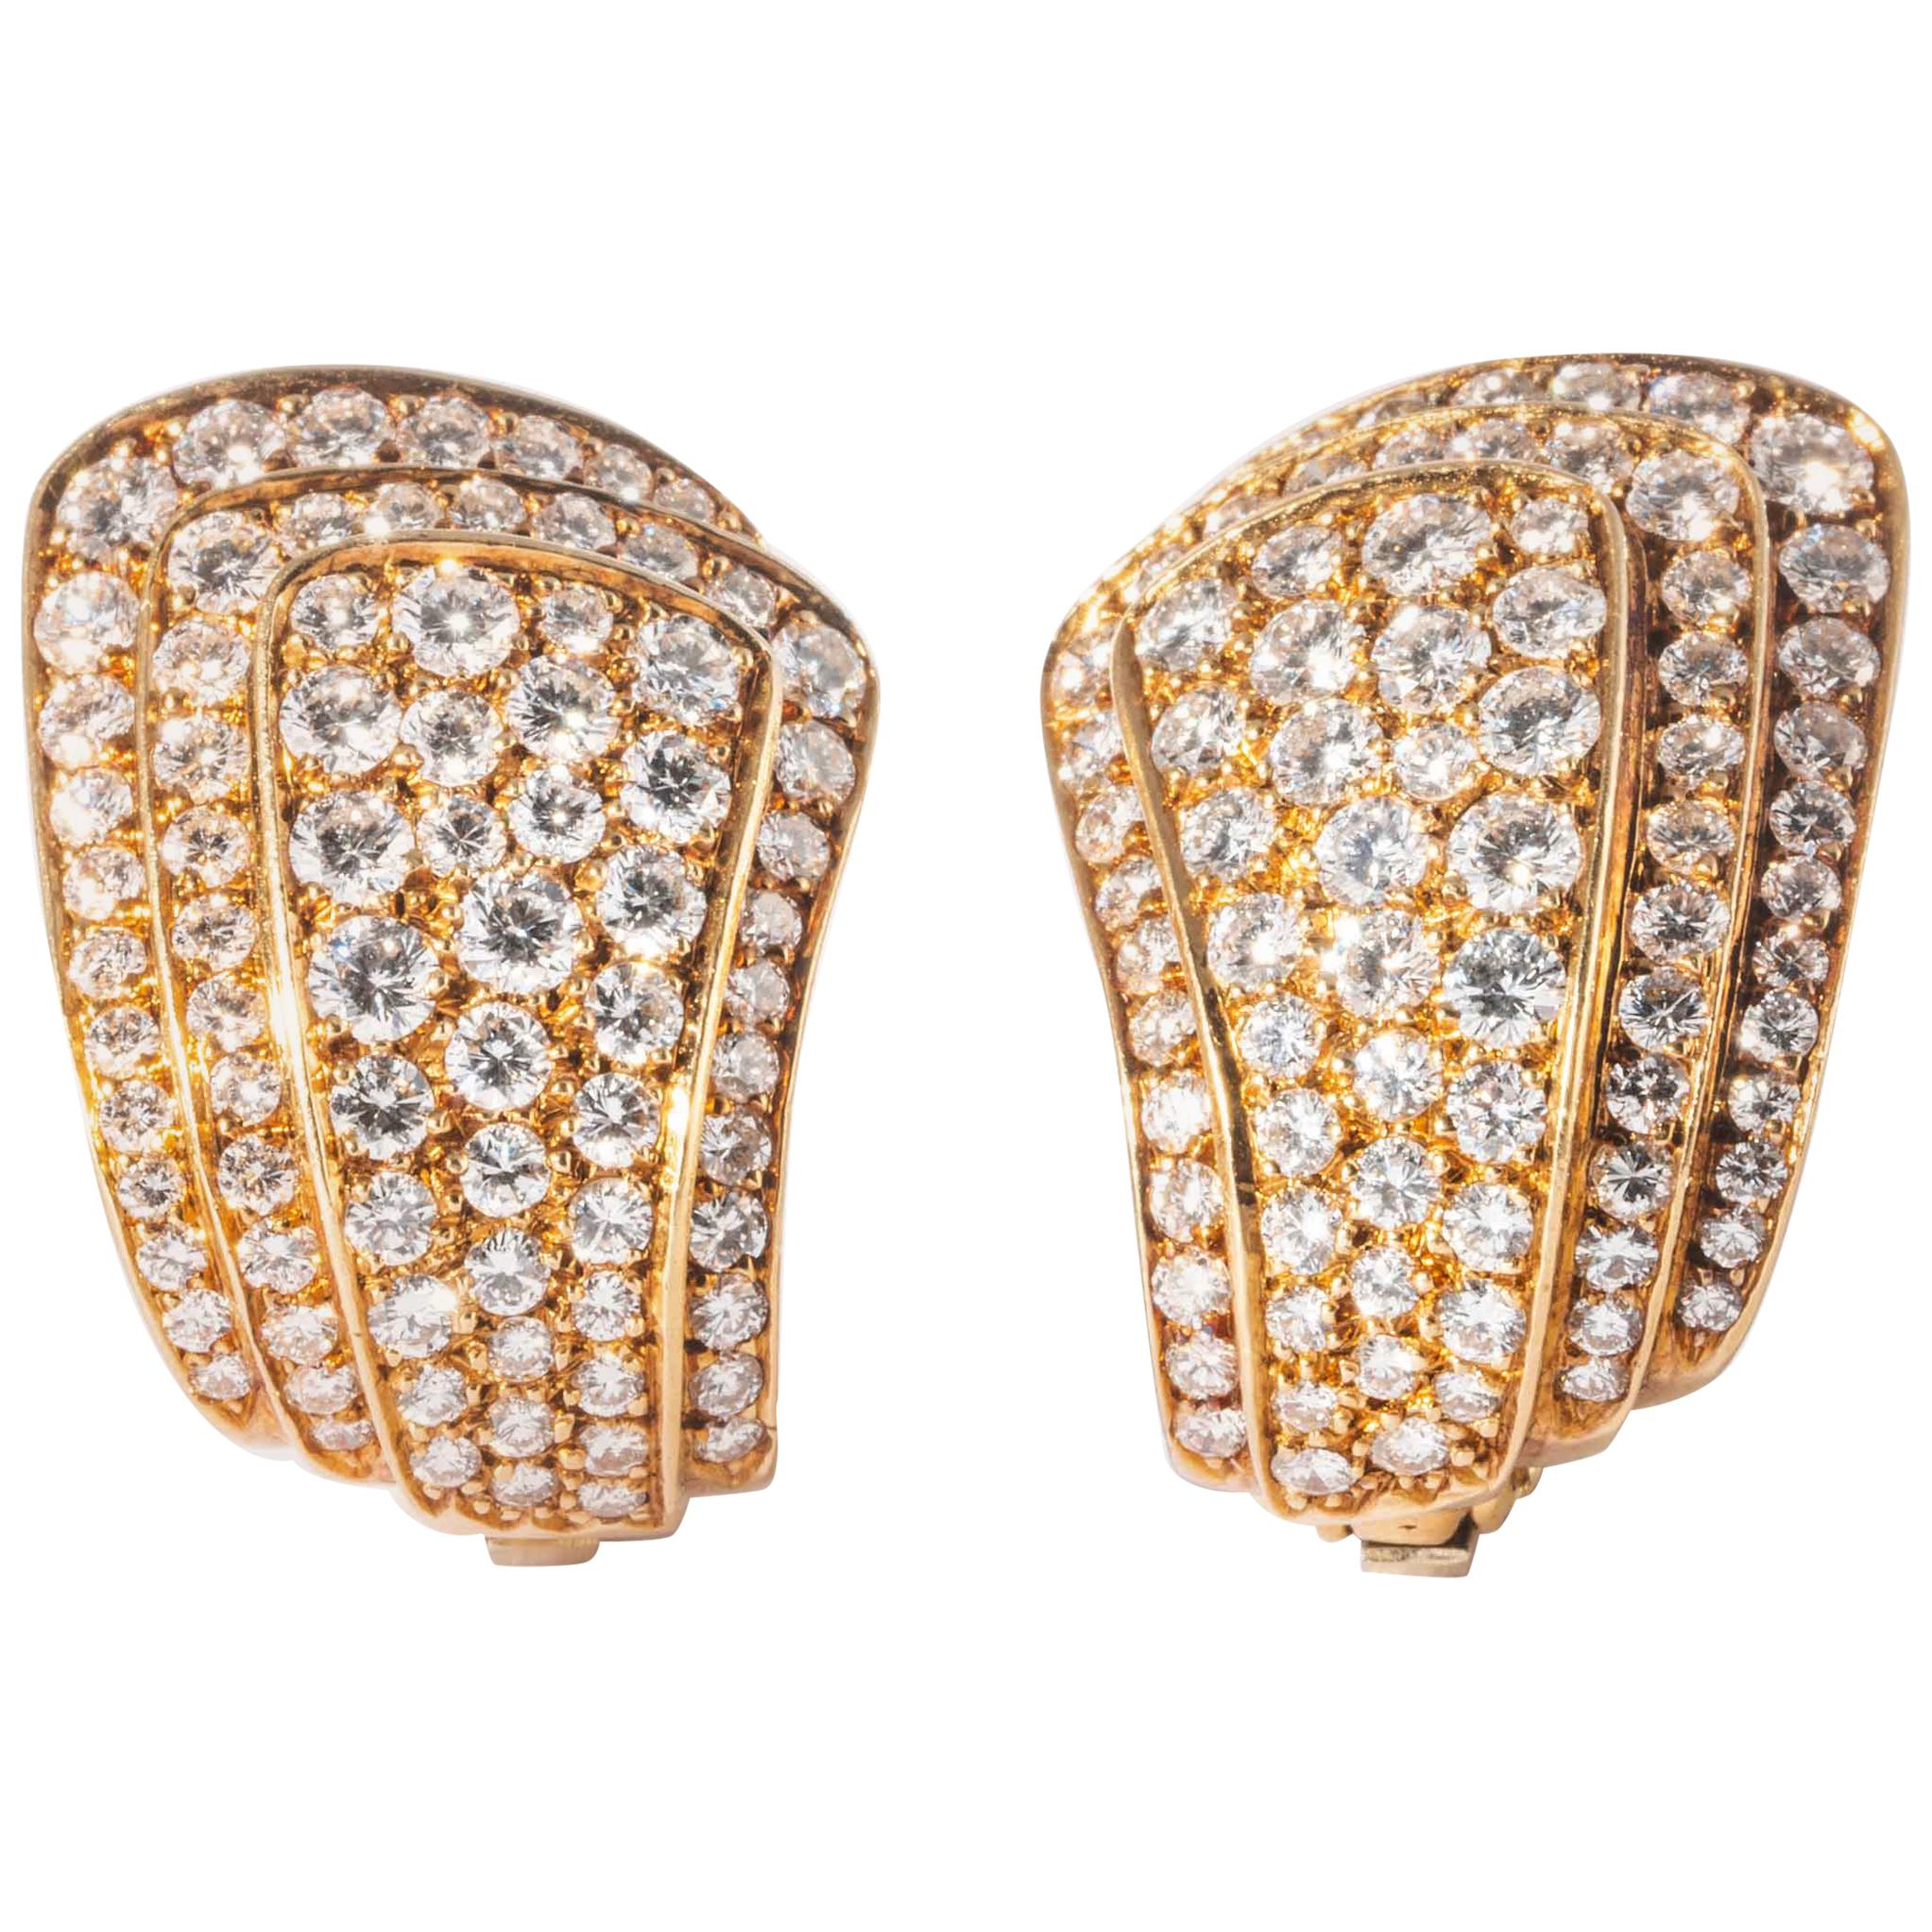 Van Cleef & Arpels Yellow Gold and Diamond Pave Clip Earrings 'Vintage'